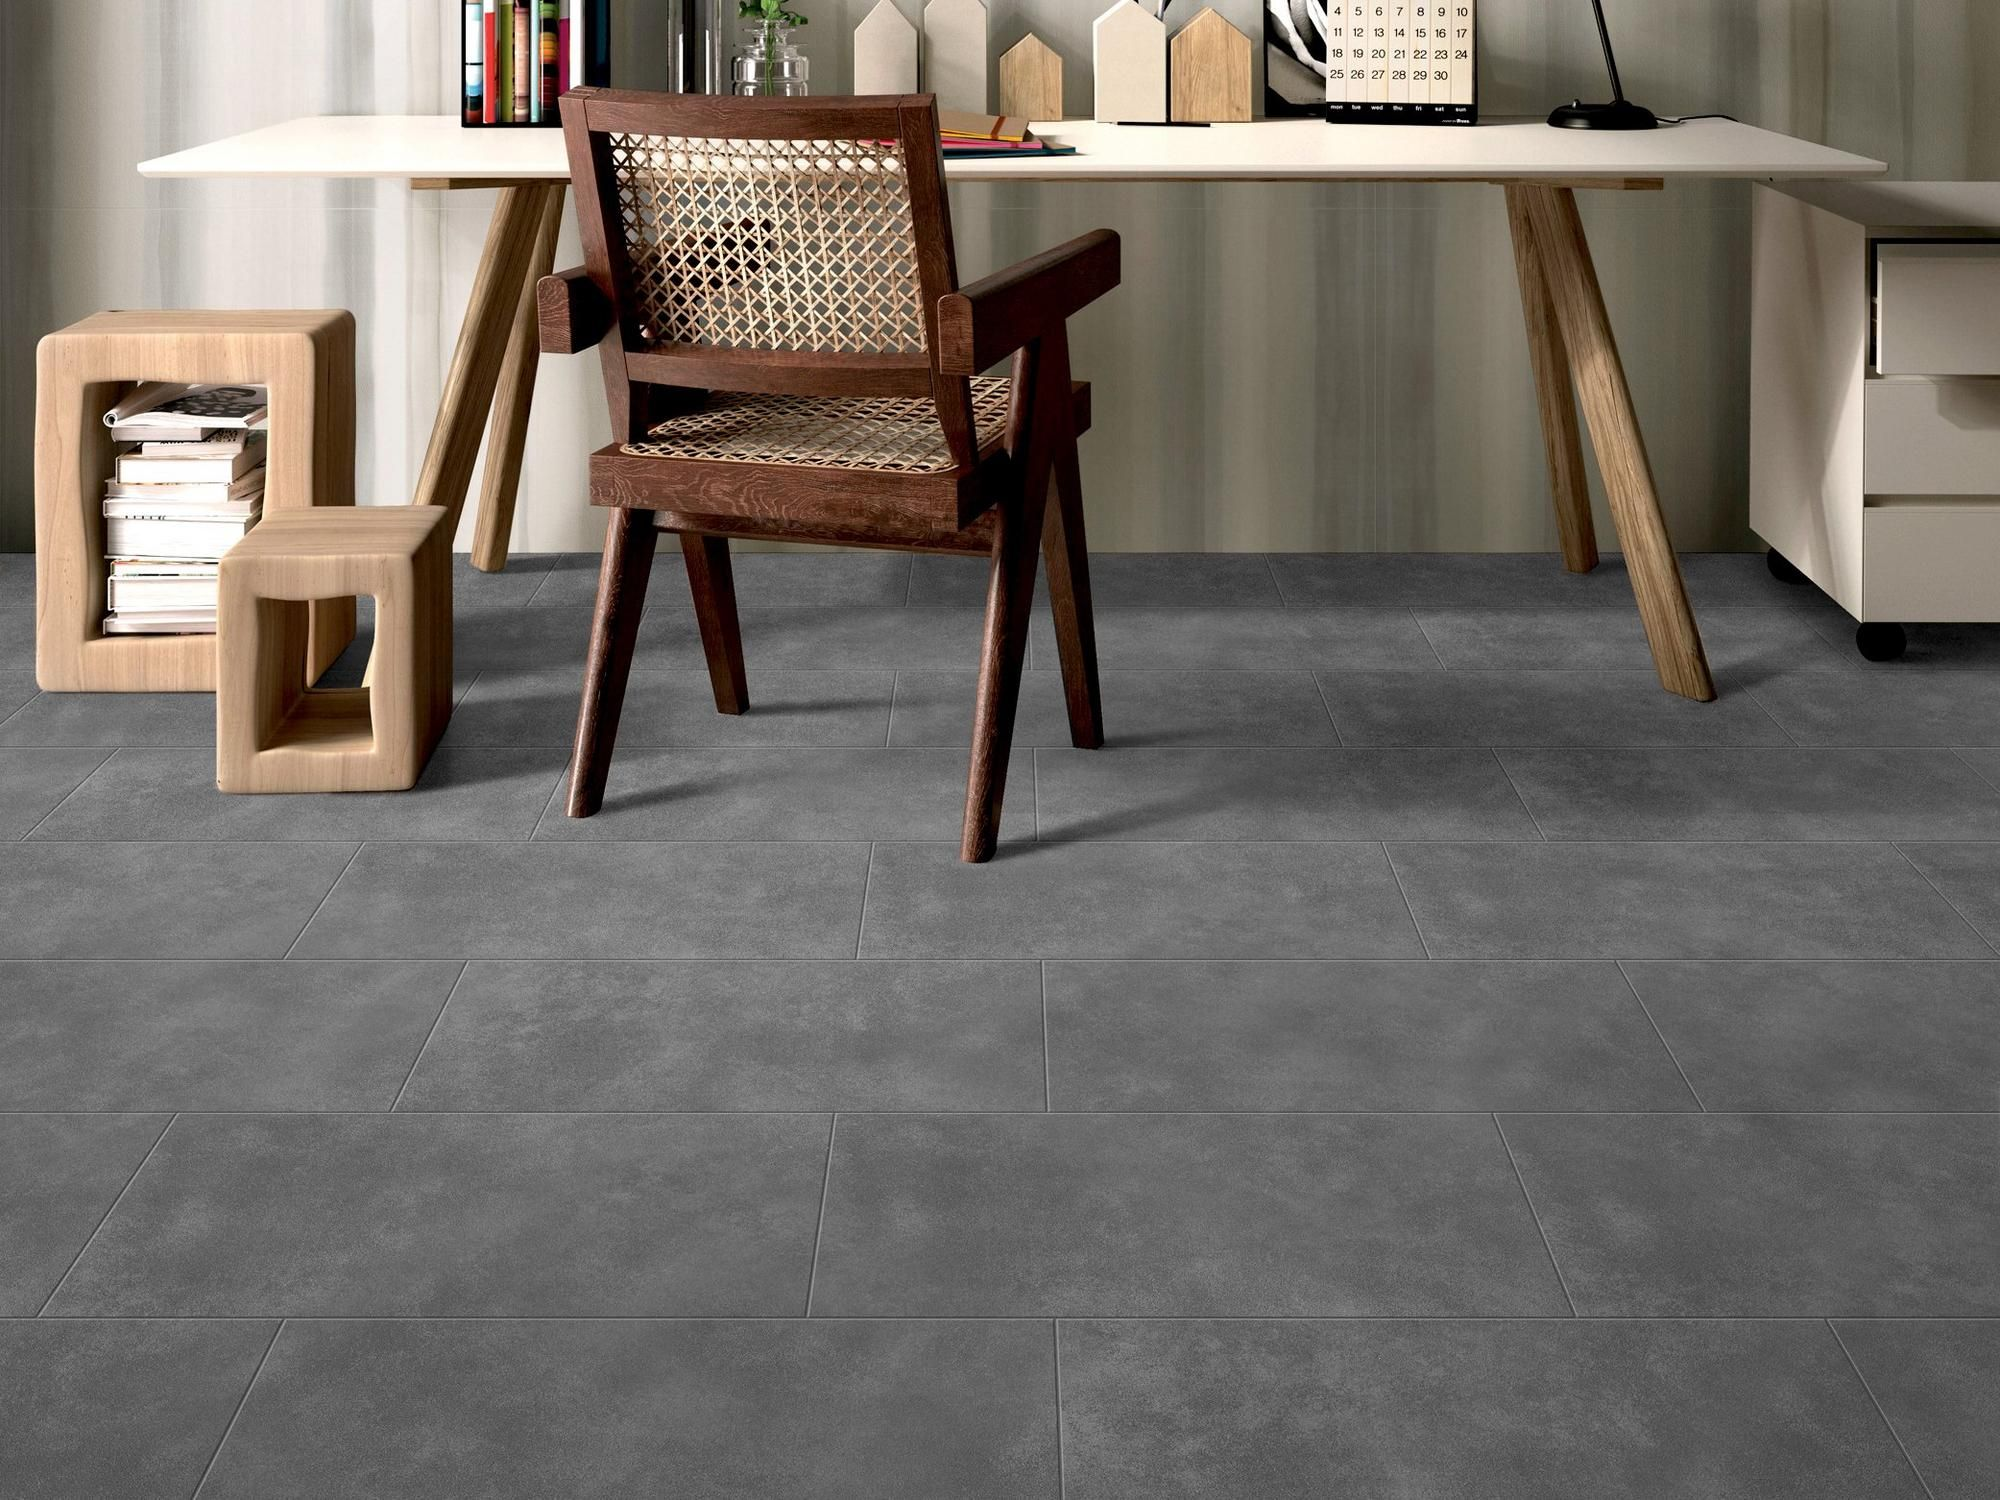 Uptown Antracite Porcelain Tile Floor In 2019 Flooring